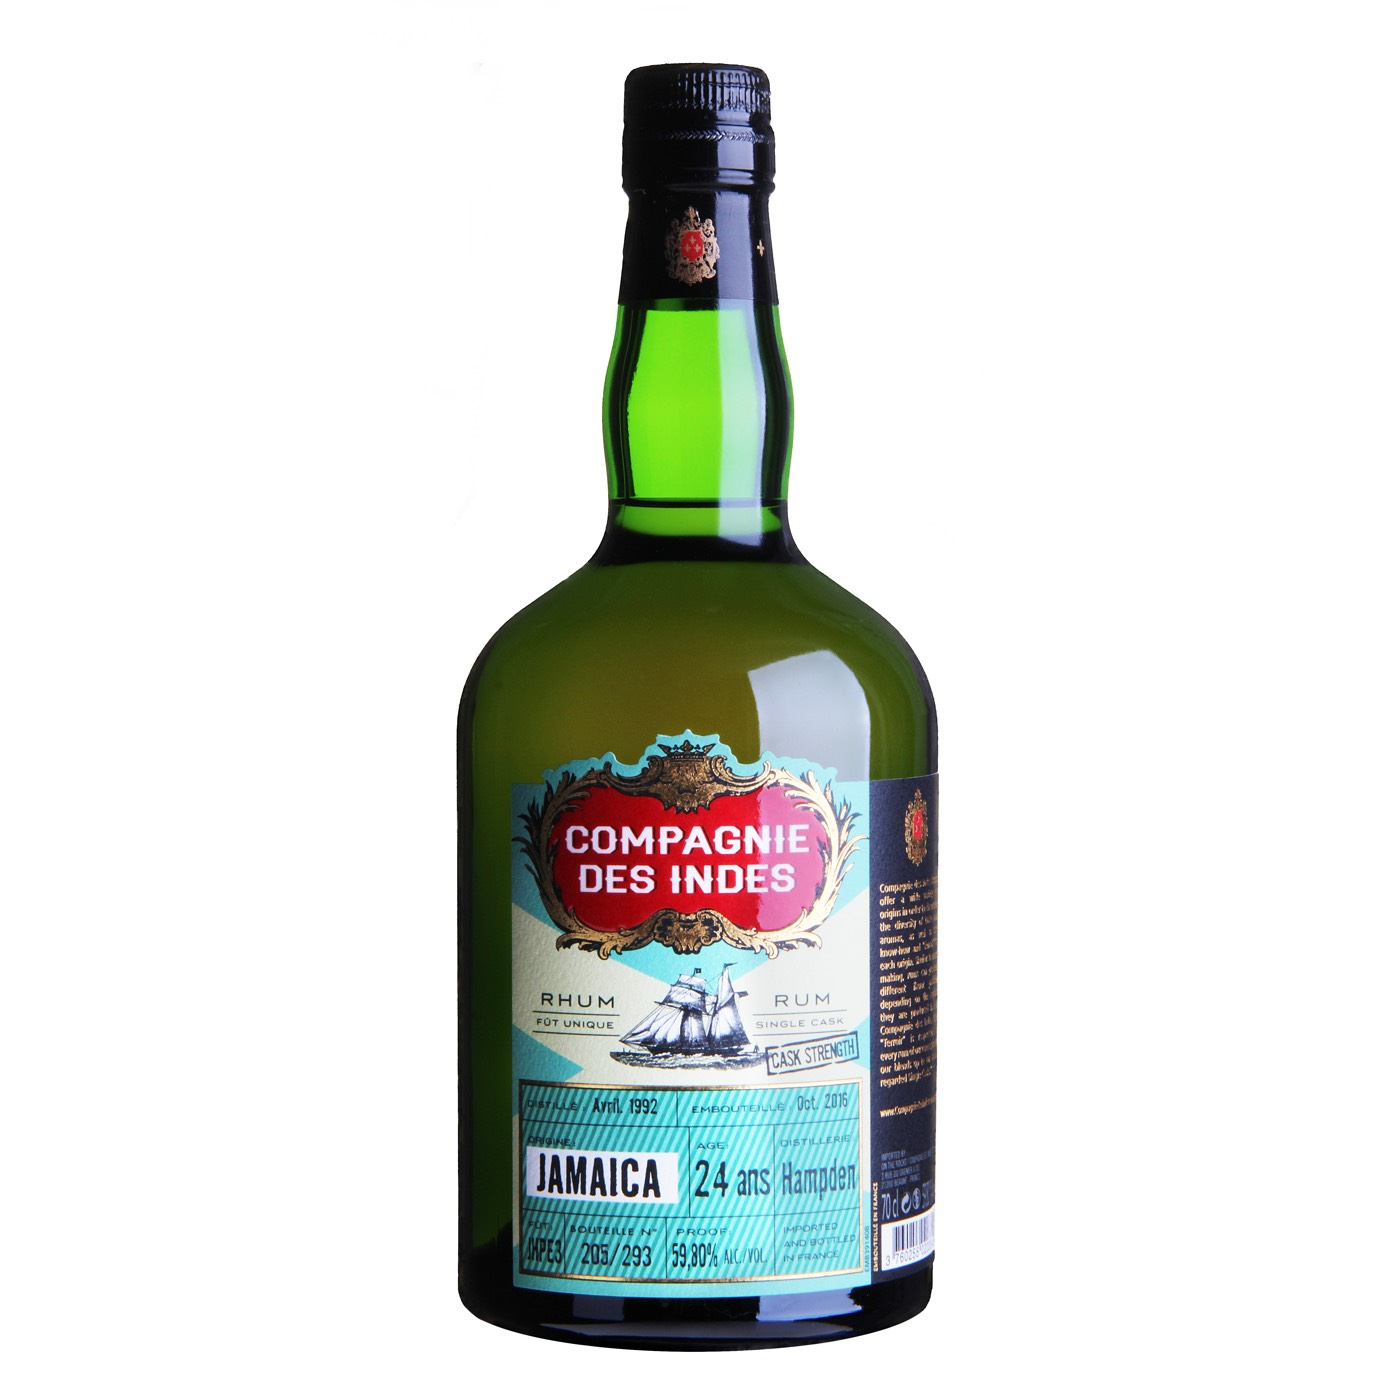 Bottle image of Jamaica HLCF